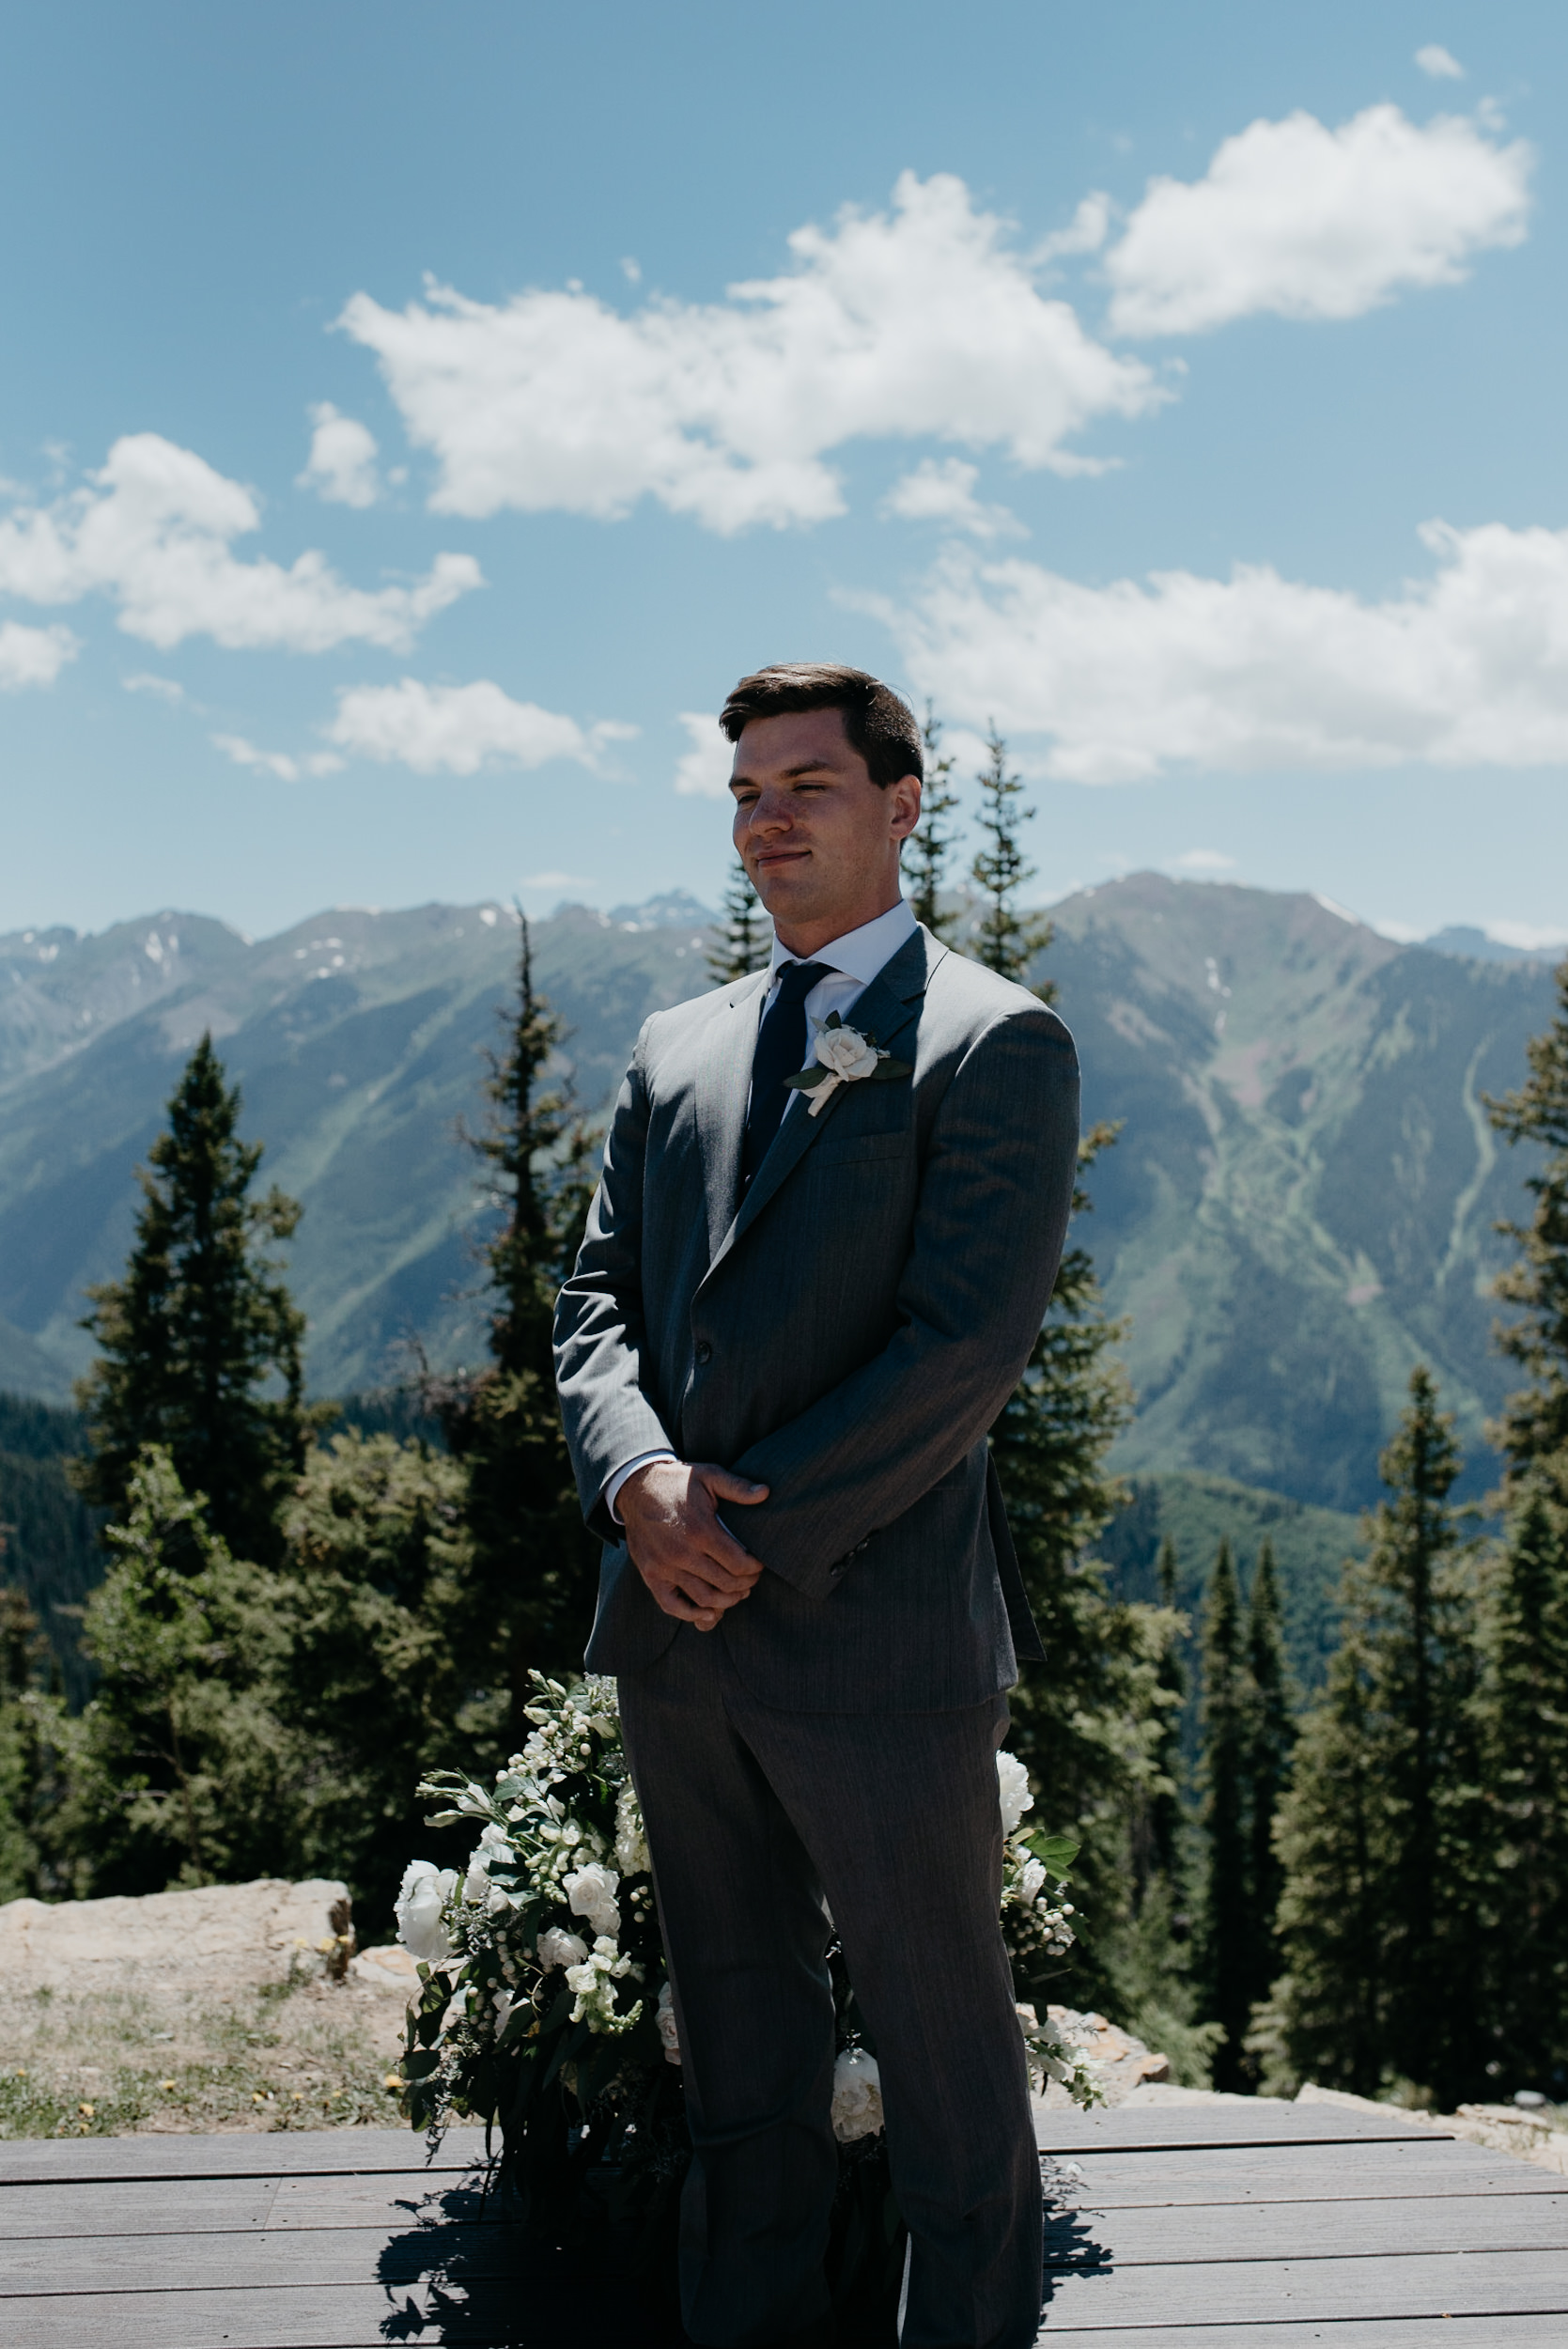 Groom at wedding ceremony in Aspen, Colorado at The Little Nell.